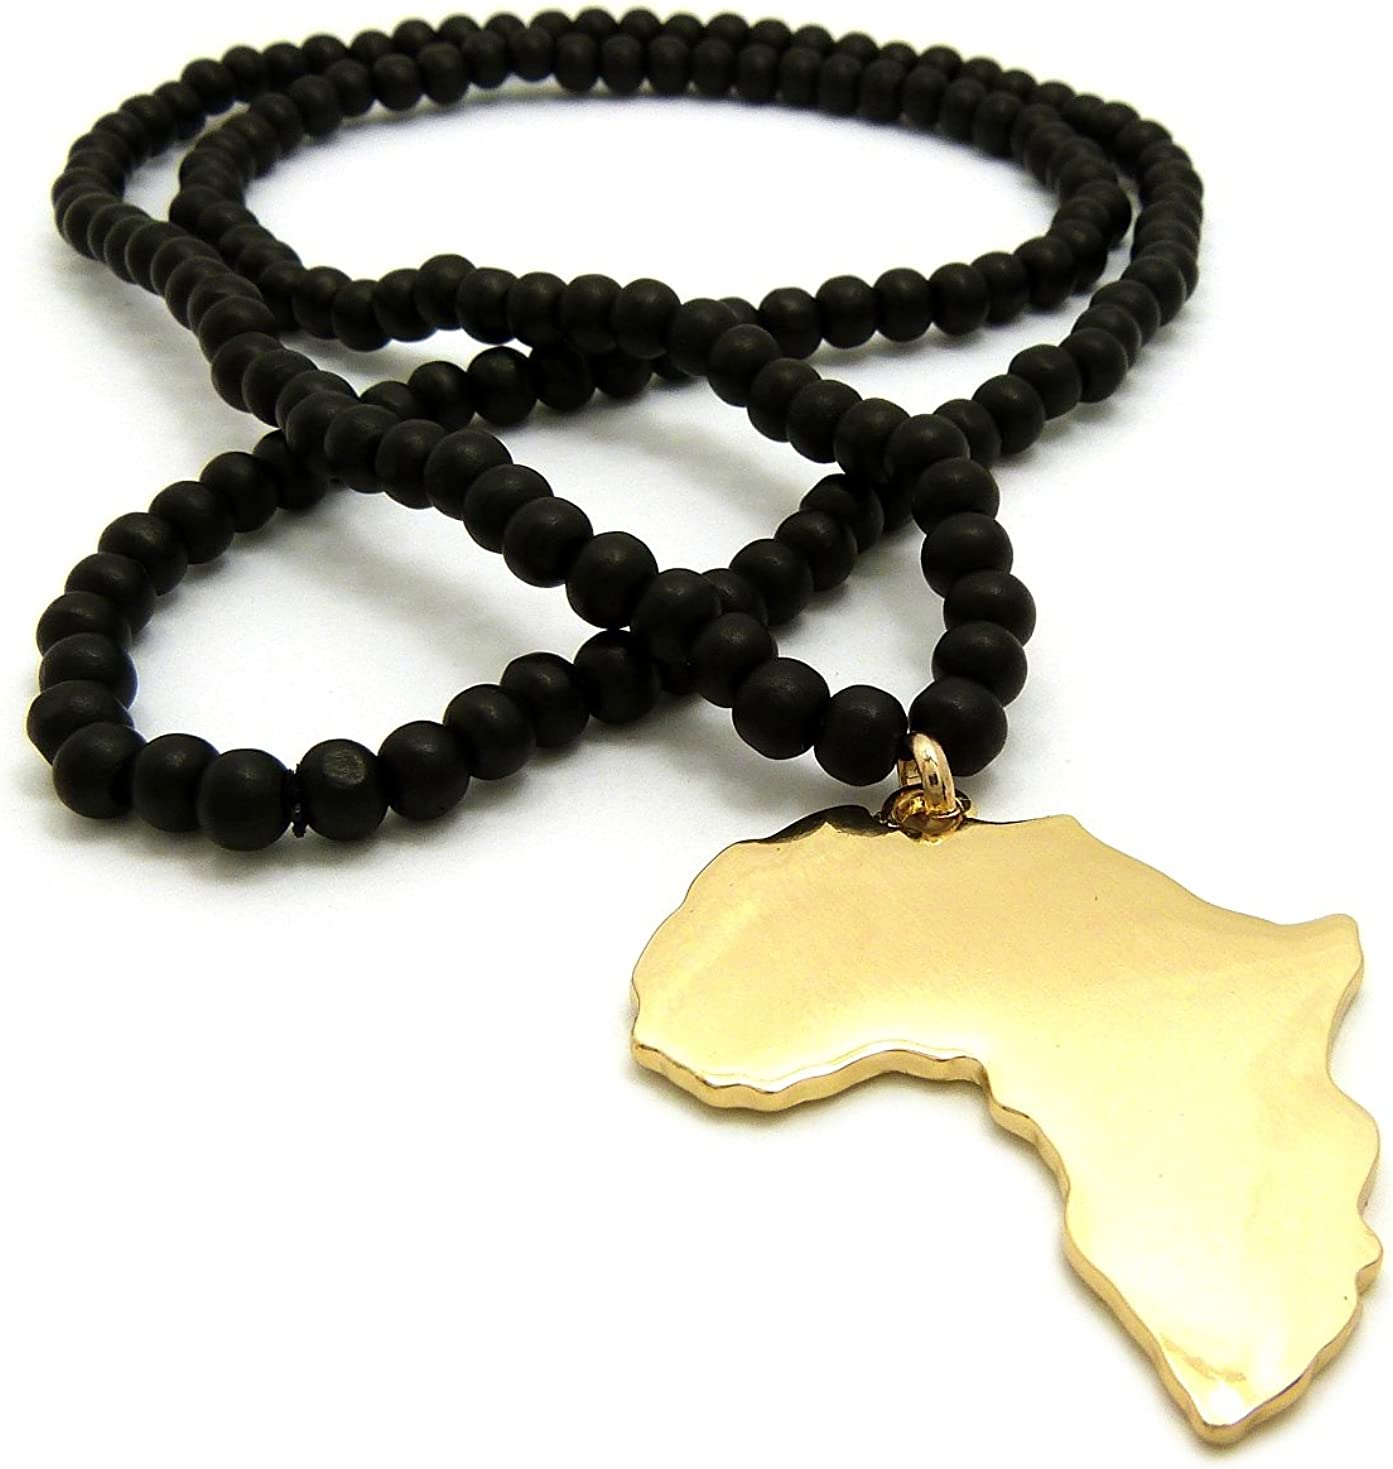 Polished Africa Map Shape Pendant 6mm 24,30 Wooden Bead Necklace in Gold Tone